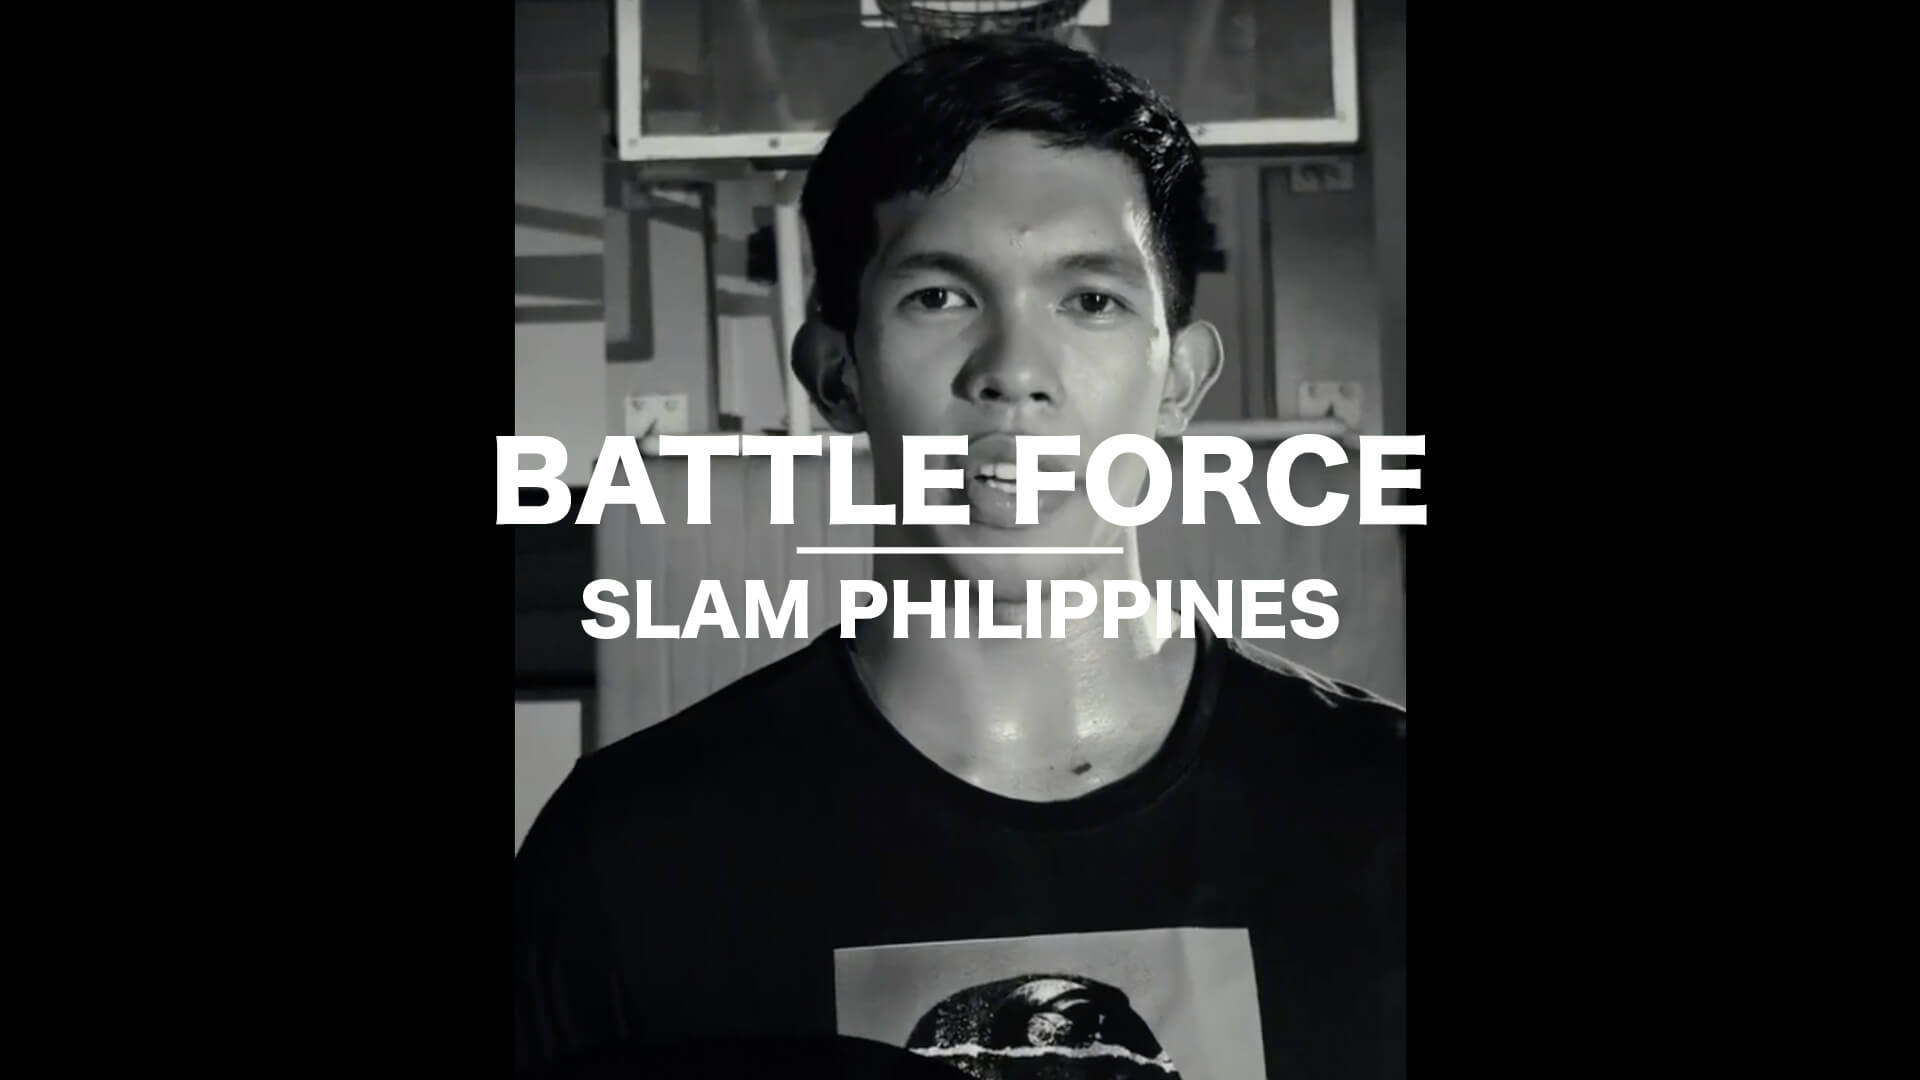 Project Battle Force 2018 Thirdy Ravena Slam Philippines Digital